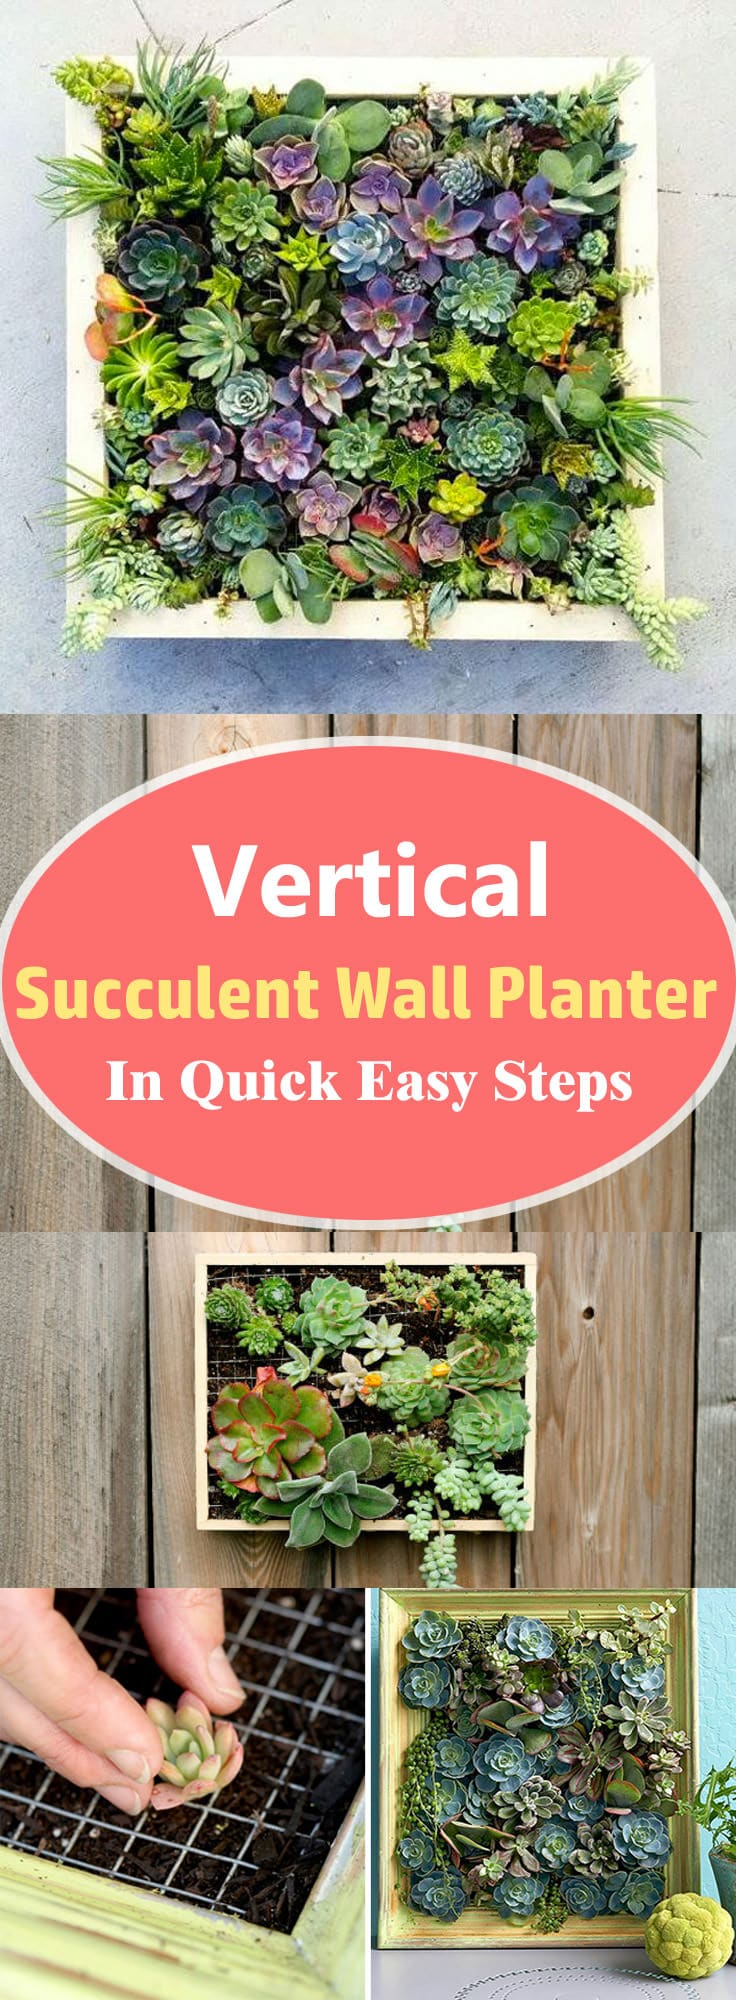 Vertical Succulent Wall Planter In Quick Easy Steps Diy Succulent Frame Balcony Garden Web